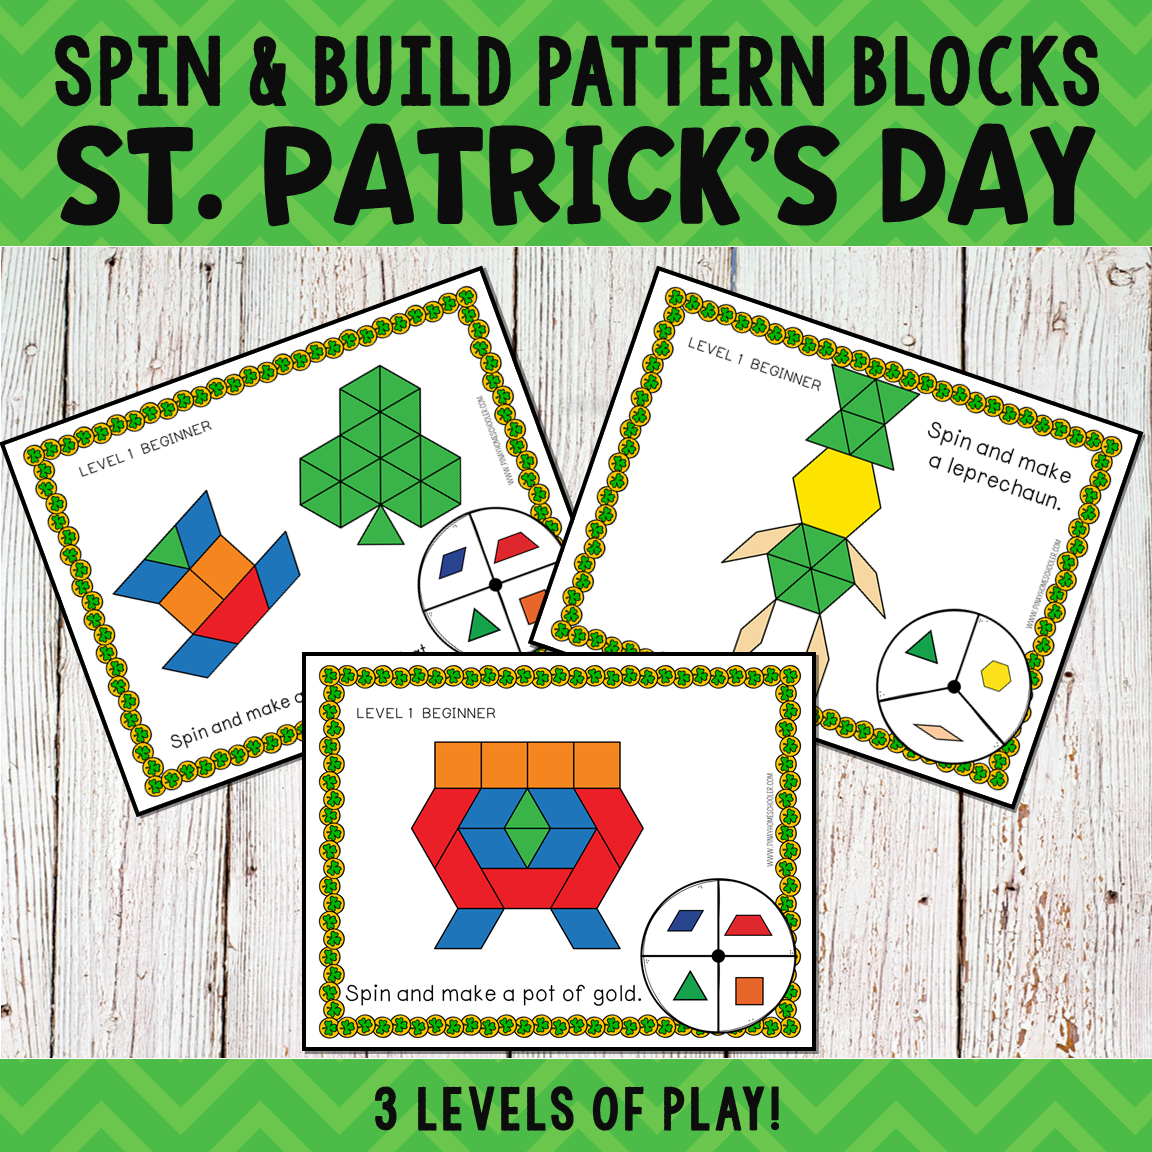 St. Patrick's Day Pattern Blocks Spin and Build